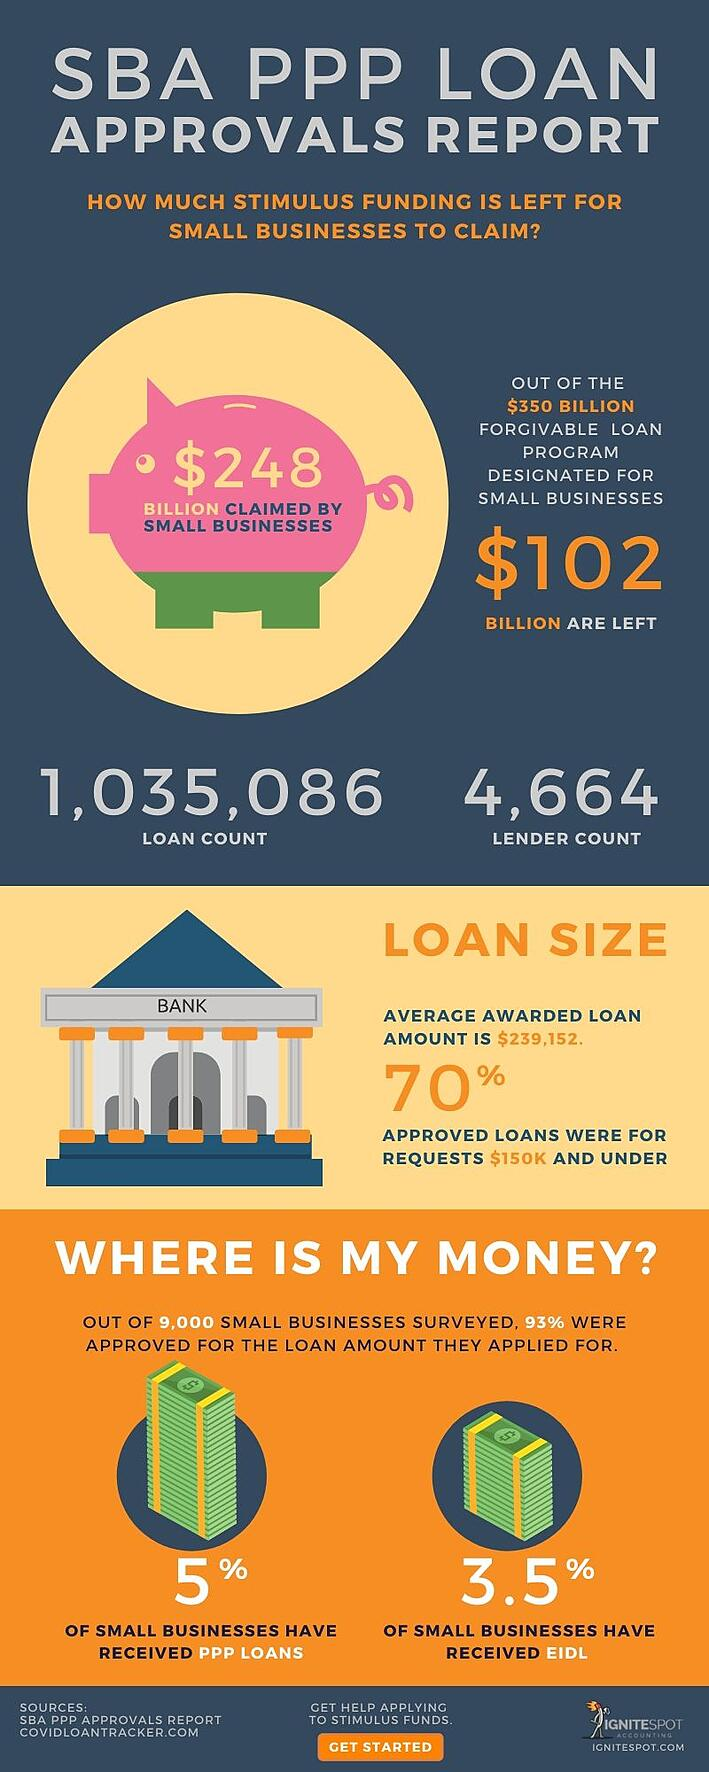 SBA PPP Loan Approval Report_4-13-2020_Infographic_By Ignite Spot